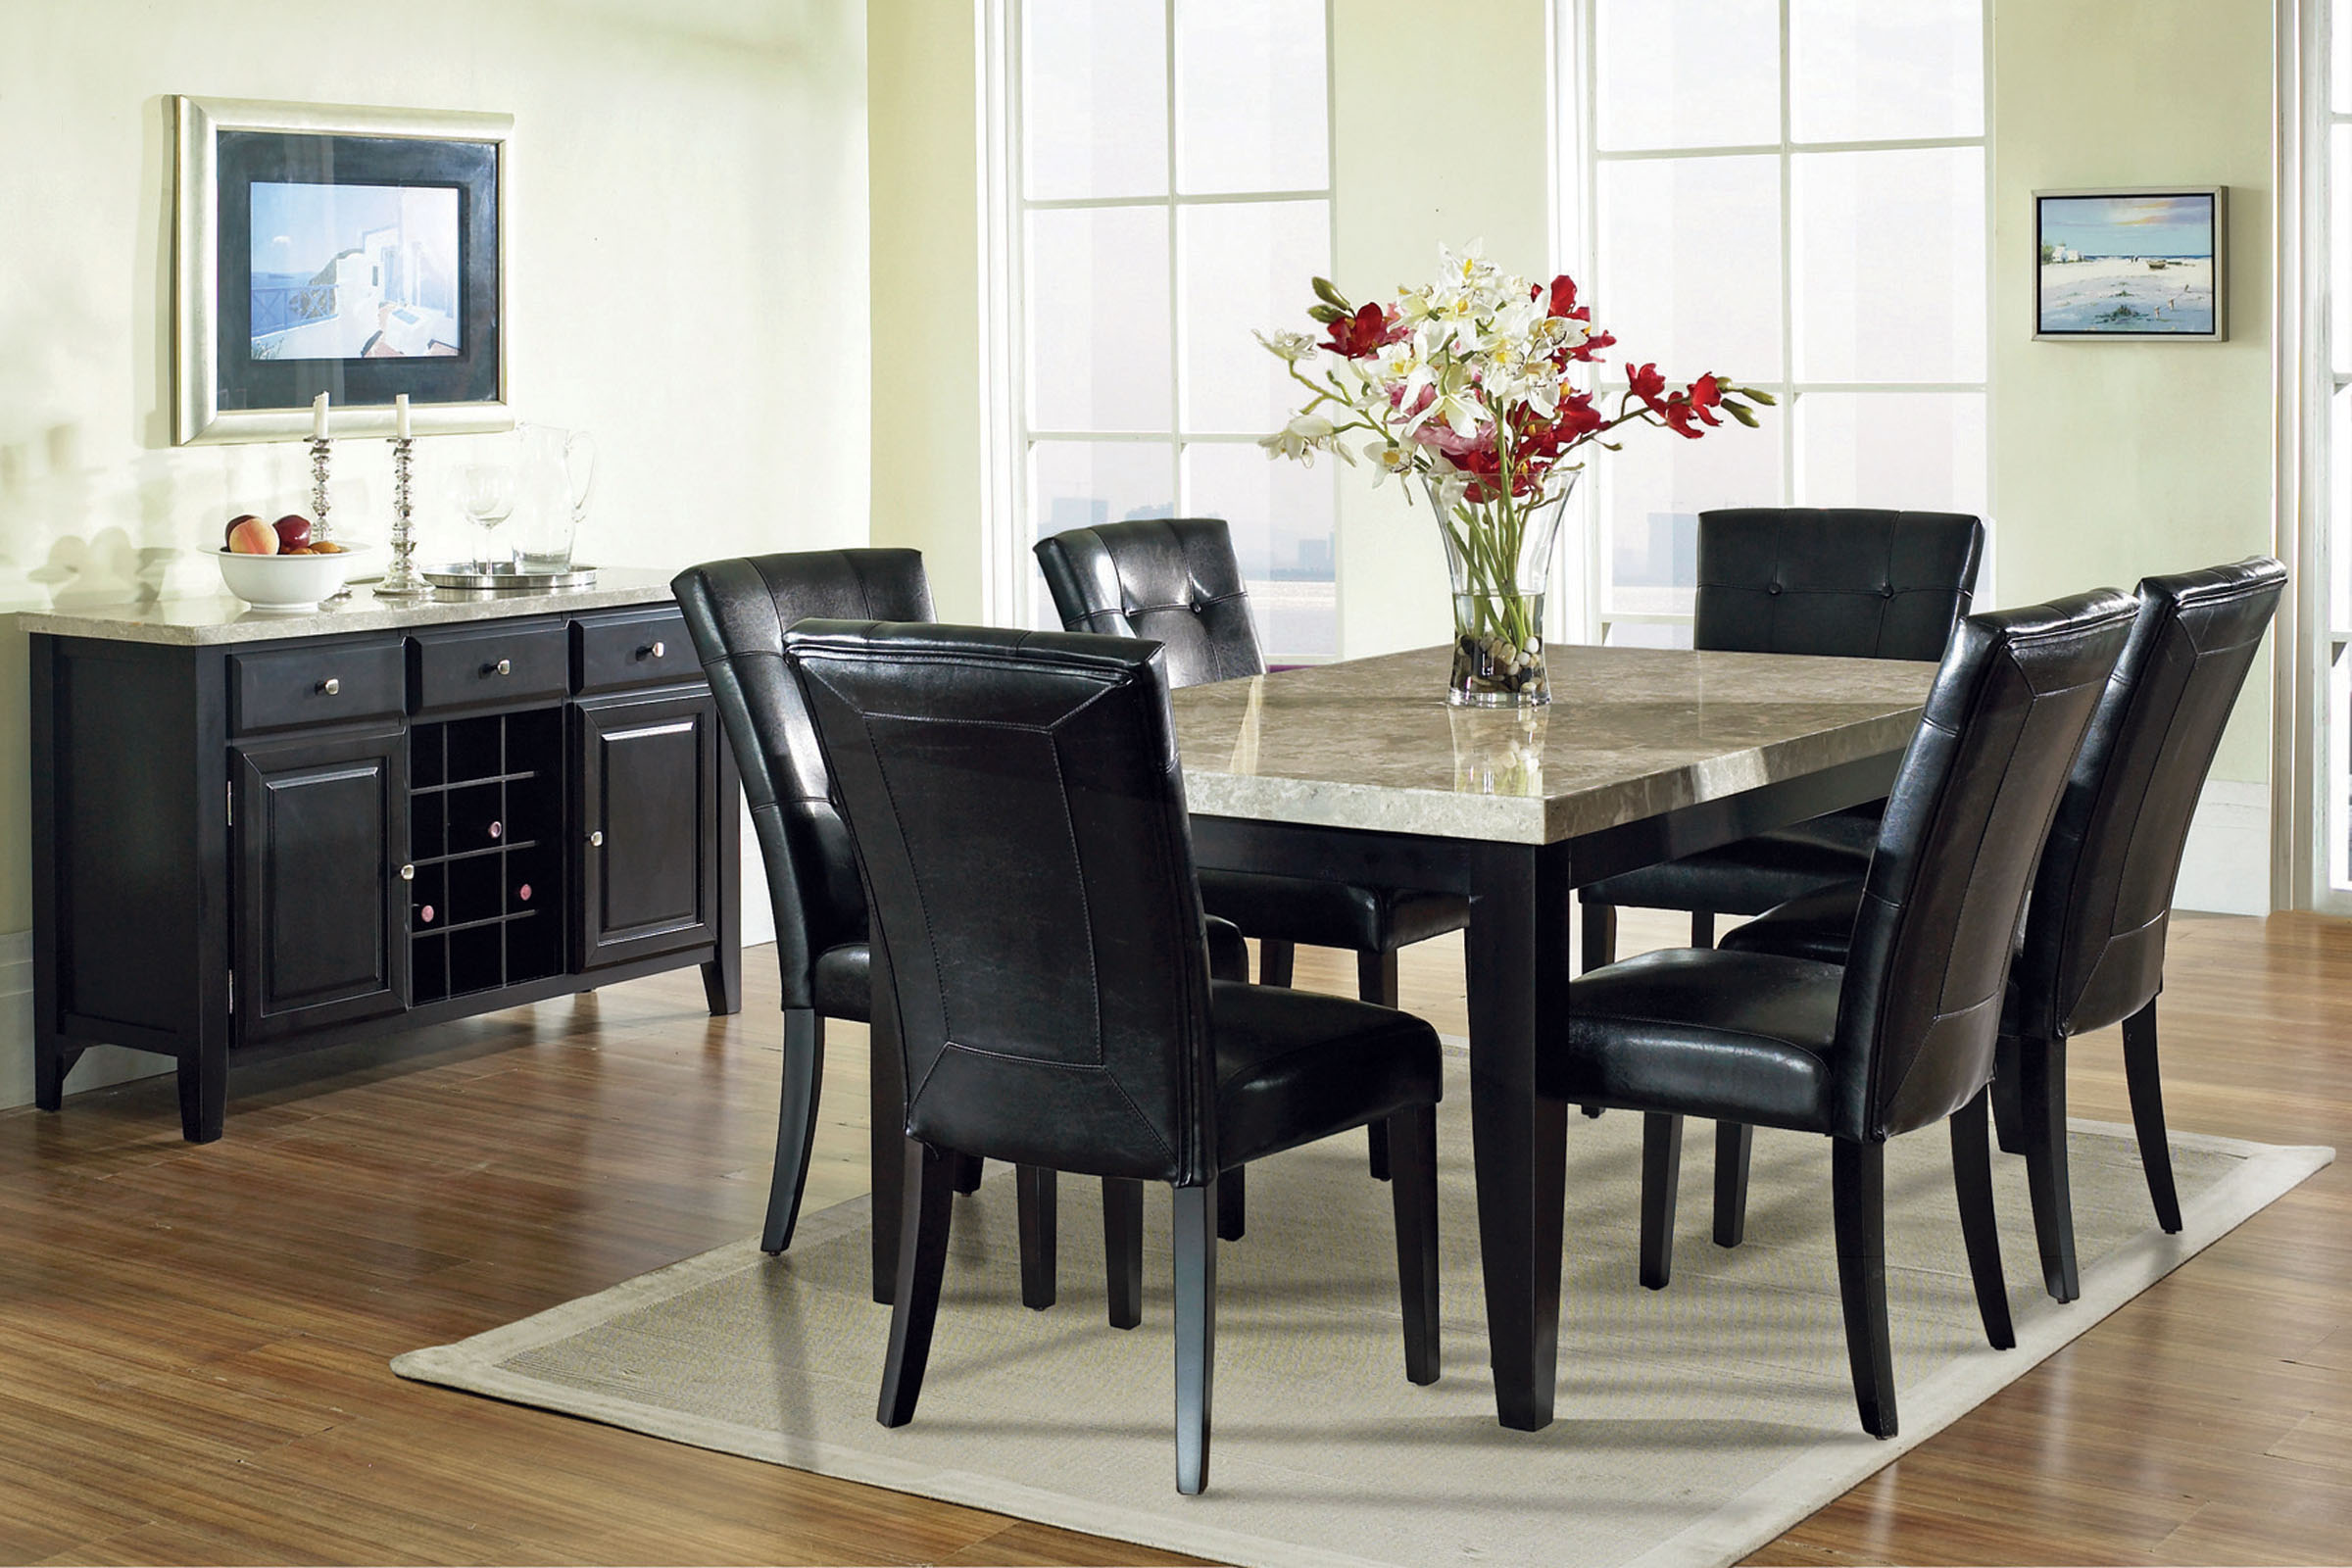 Mayfair Dining Room Collection